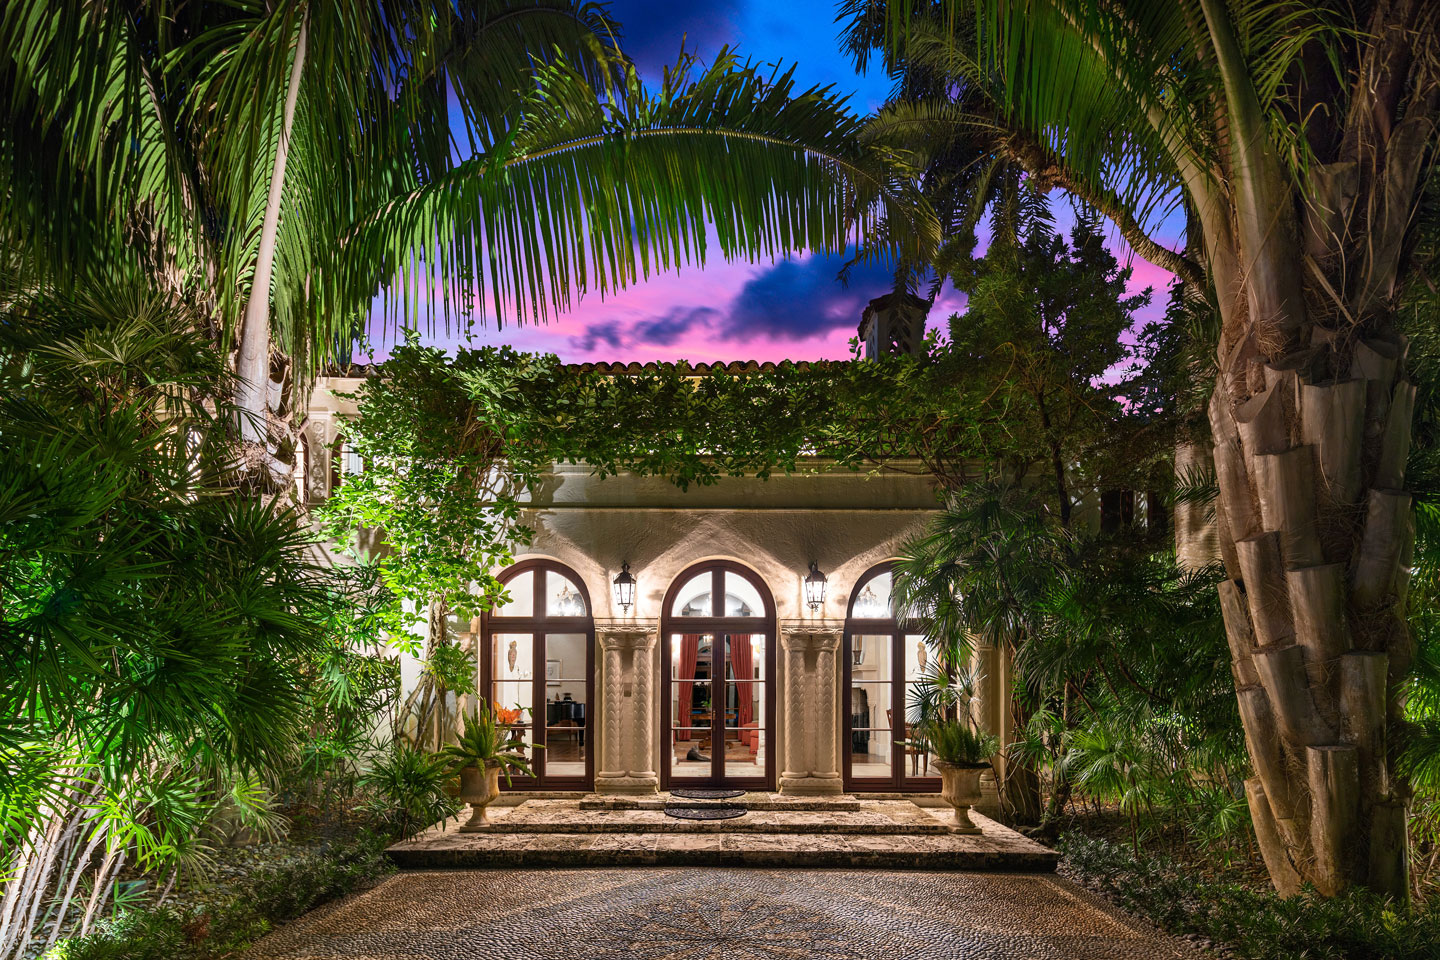 3725 Leafy Way, Coconut Grove, Miami, Florida, USA | Entrance | Listed by Dennis Carvajal, Real Estate Agent, ONE Sotheby's International Realty | Finest Residences